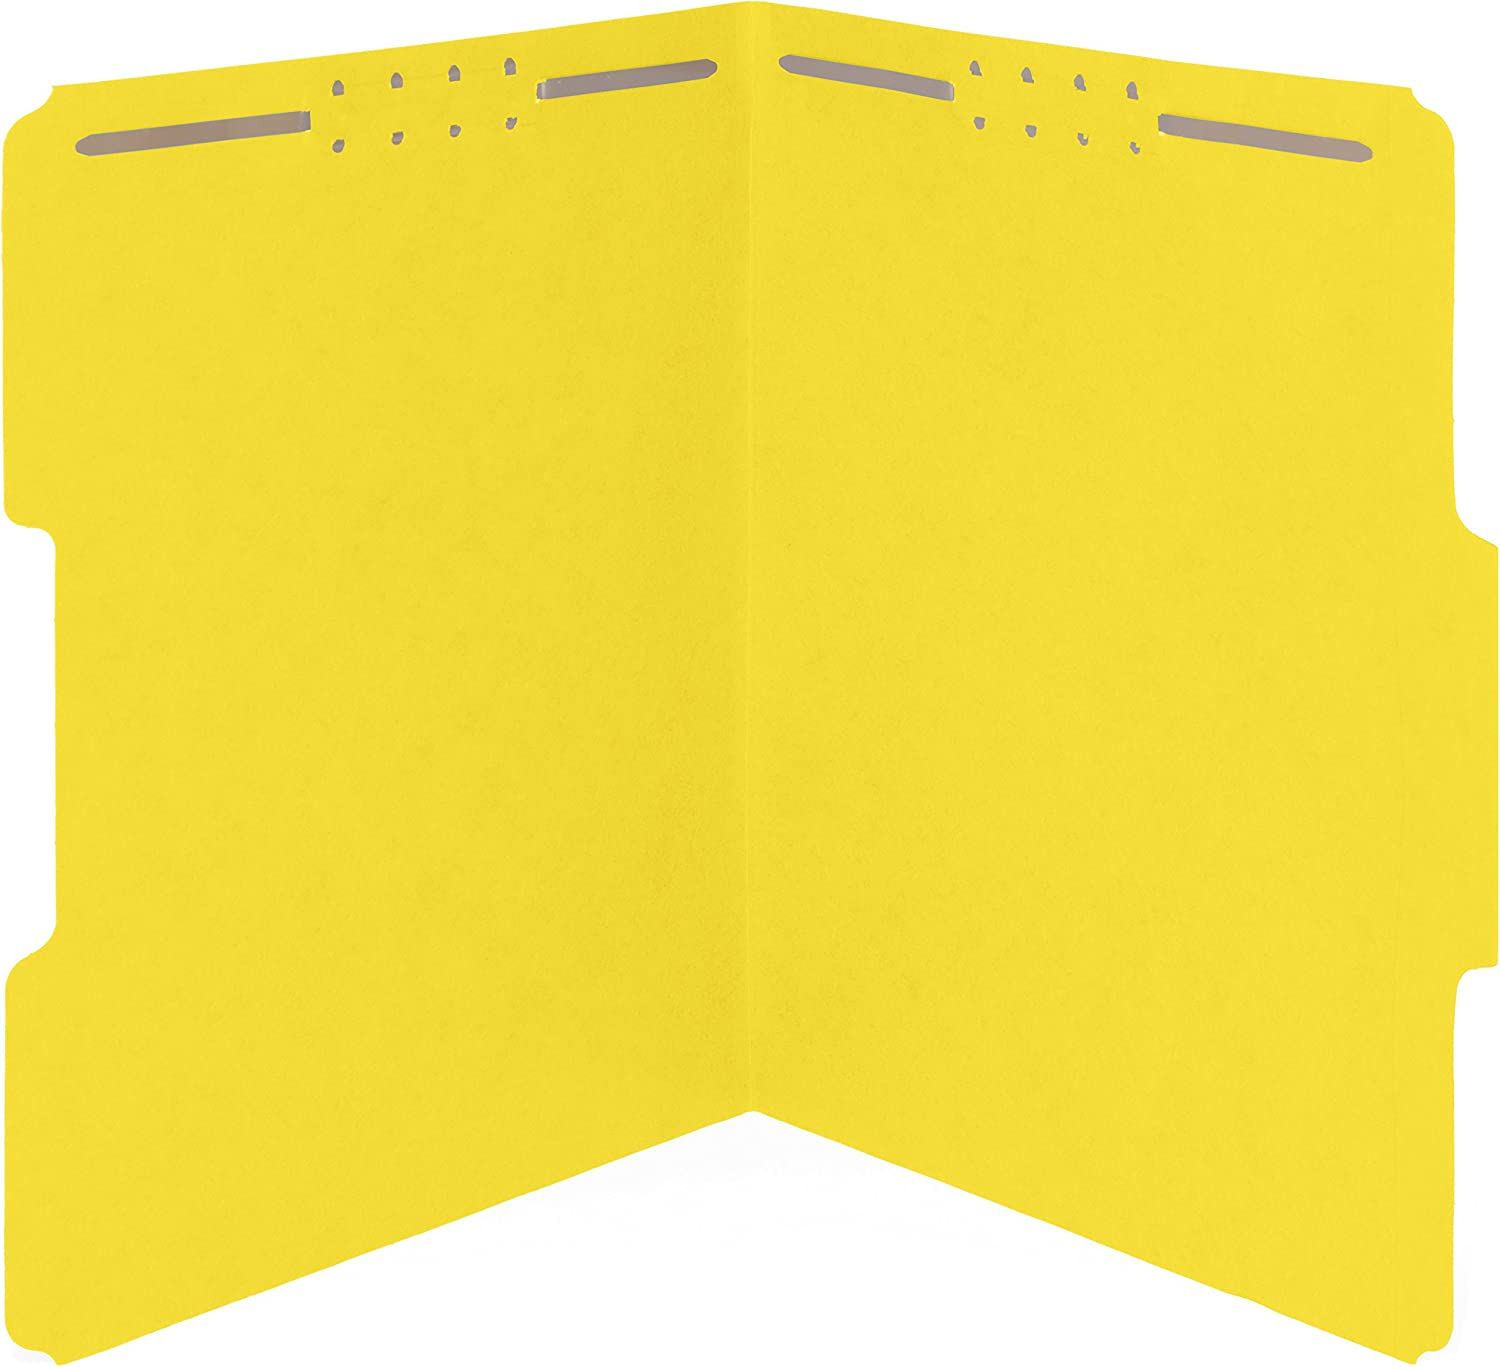 50 Yellow Fastener File Folders - 1/3 Cut Reinforced Tab- Durable 2 Prongs Designed to Organize Standard Medical Files, Law Client Files, Office Reports - Letter Size, Yellow, 50 Pack